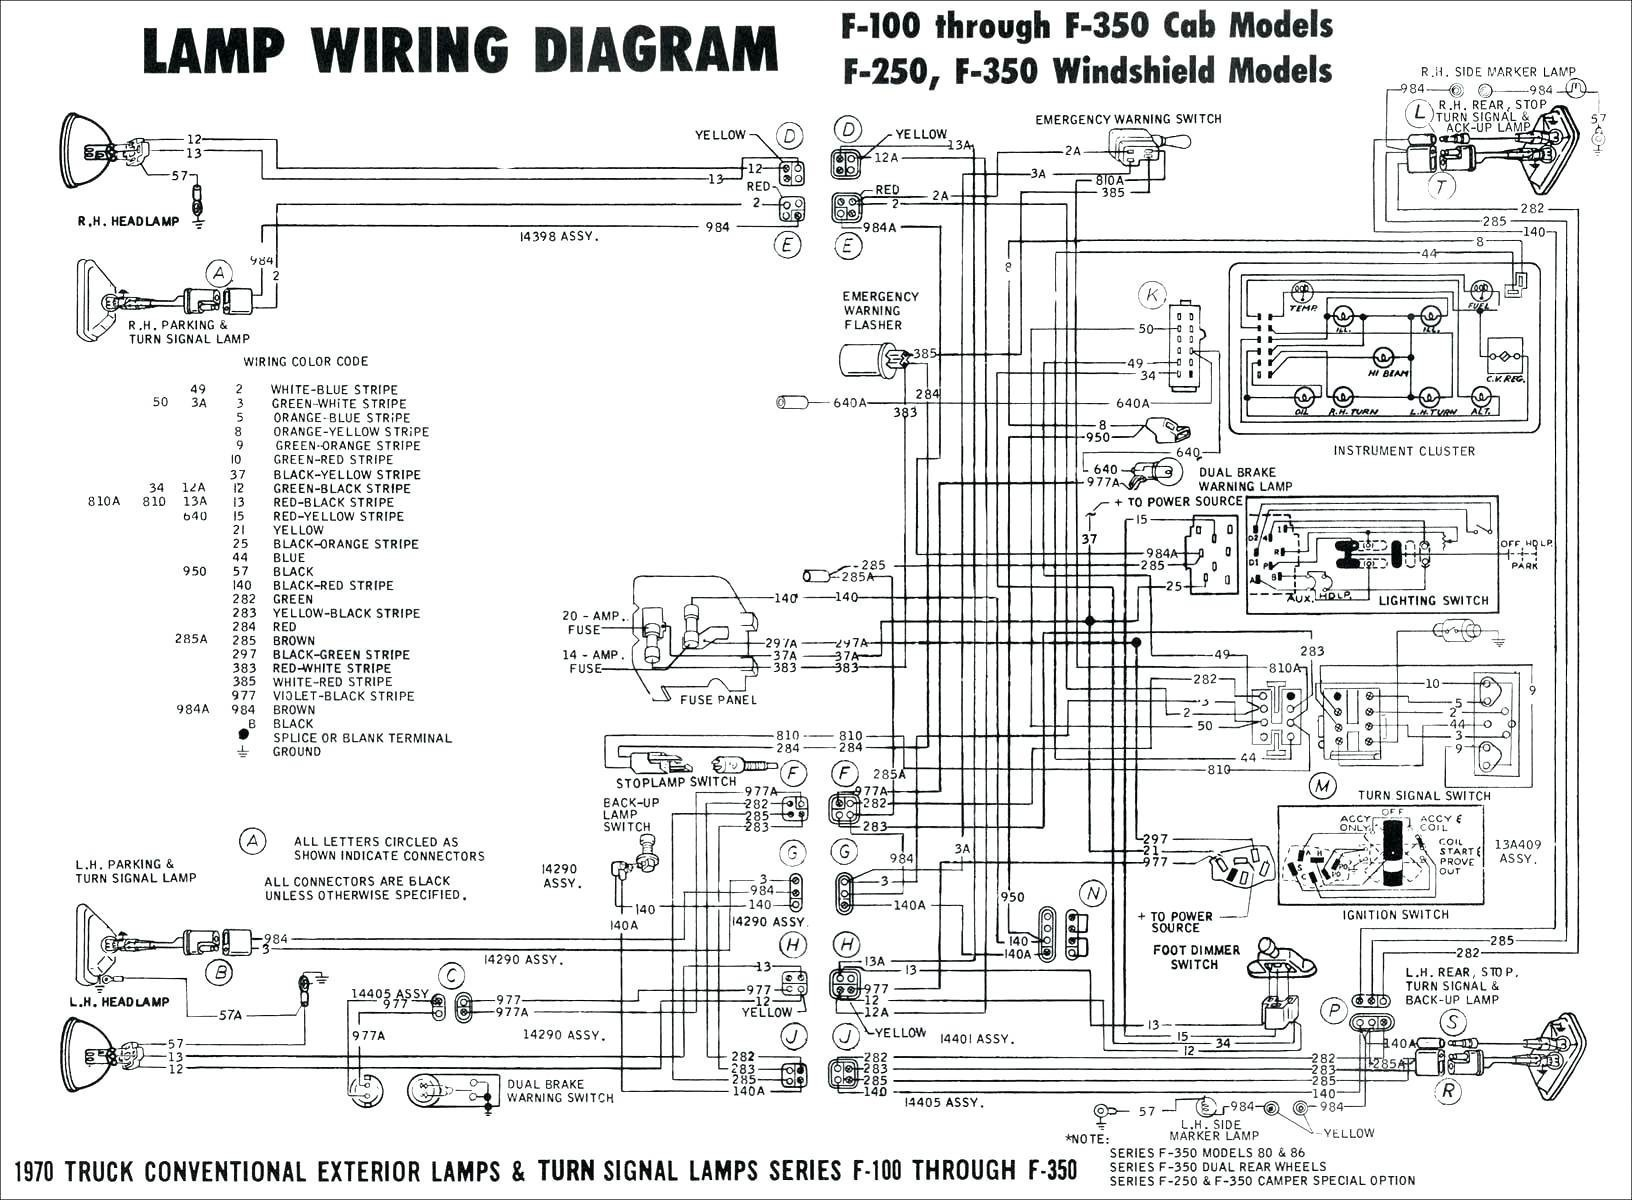 Yamaha Trim Gauge Wiring Diagram Gauges Wire Awesome Mercruiser Tilt Image